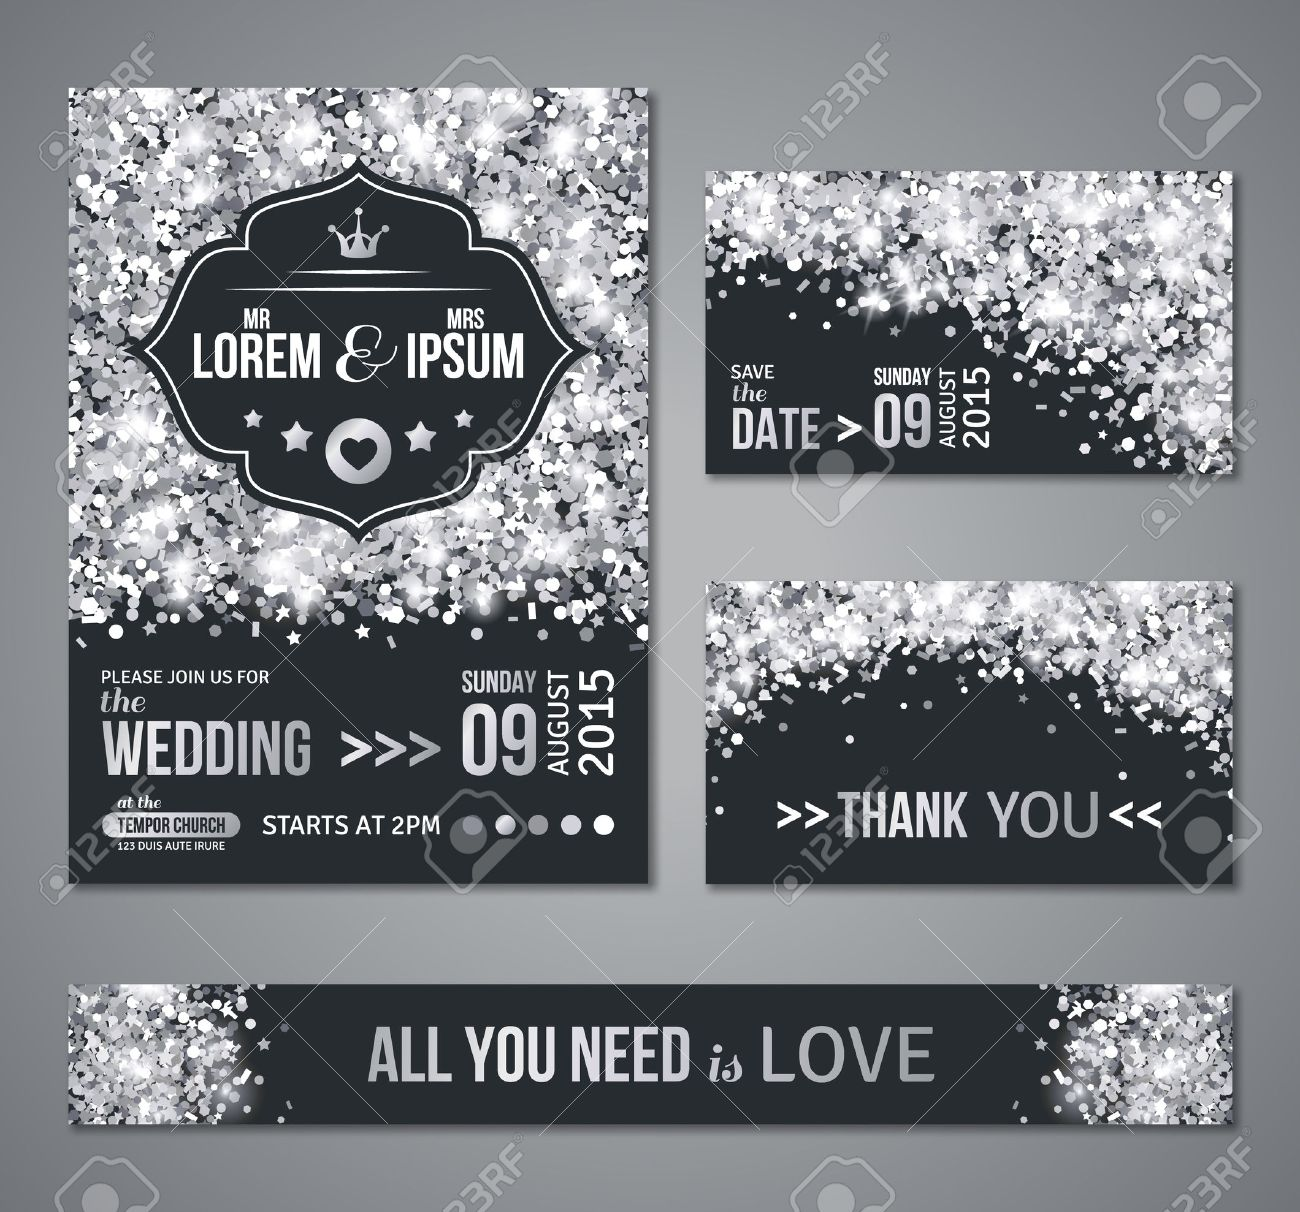 Set Of Wedding Invitation Cards Design Silver Confetti And Black Background Vector Illustration